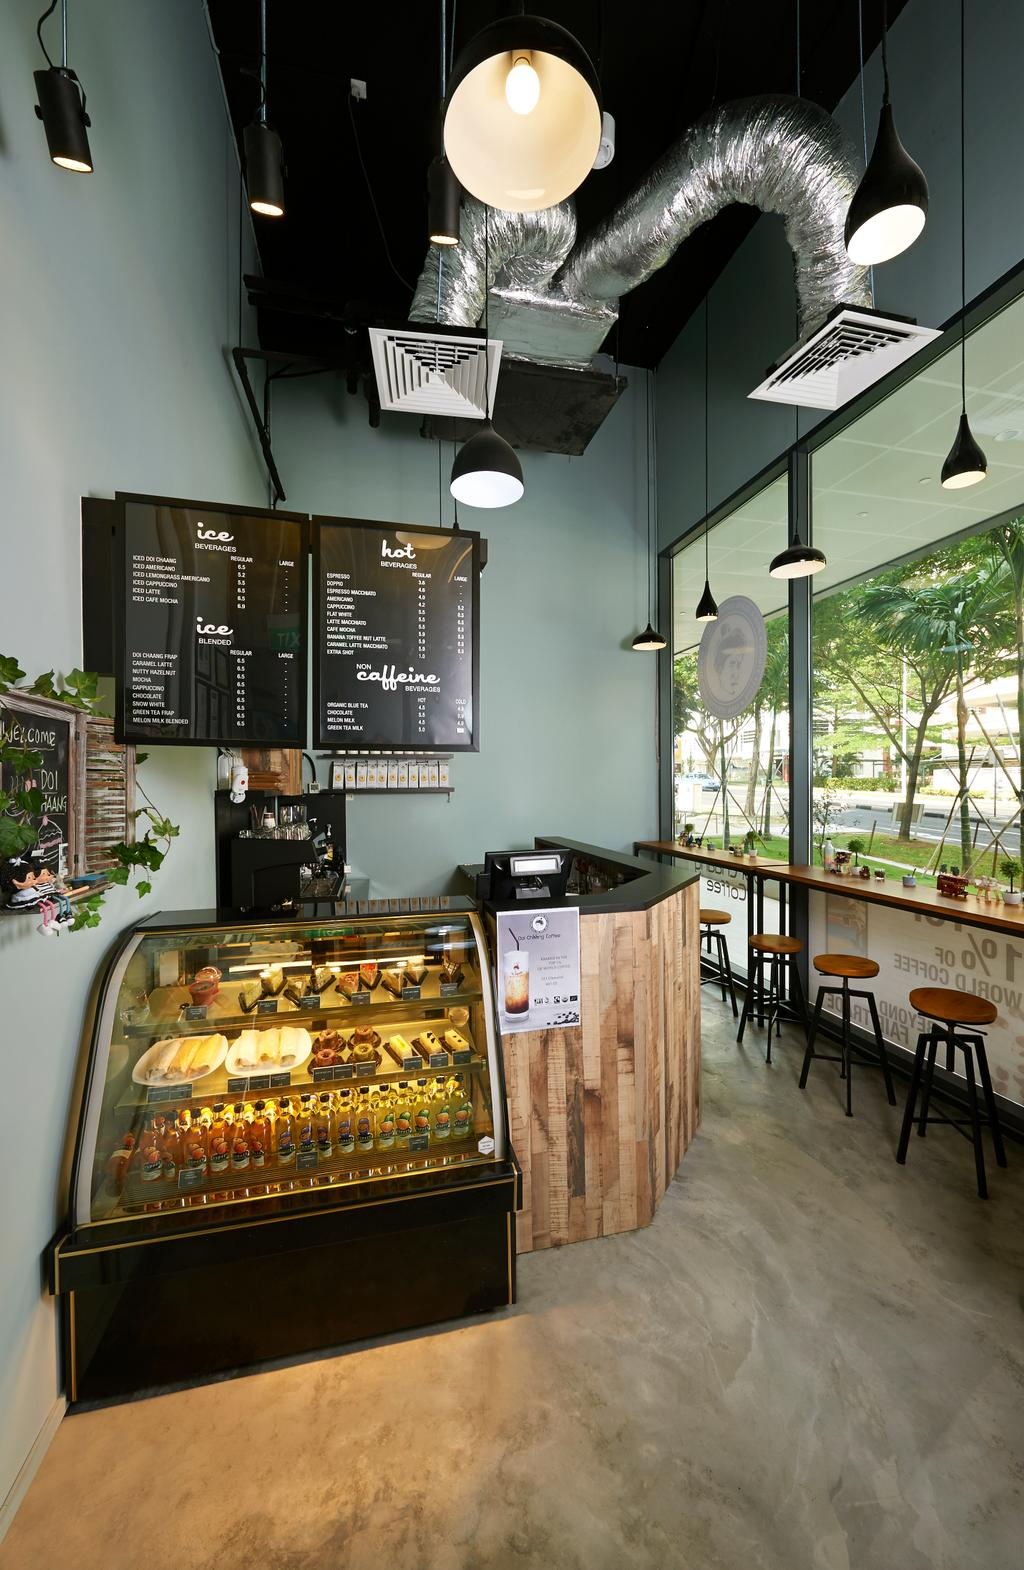 Doi Chaang Cafe, Commercial, Interior Designer, Spire Id, Industrial, Pendant Lighting, Pendant Lights, Concrete Floor, Display Counter, Wall Mounted Menu, Laminated Counter, High Chair, High Table, High Window, Human, People, Person, Bakery, Shop, Deli, Food